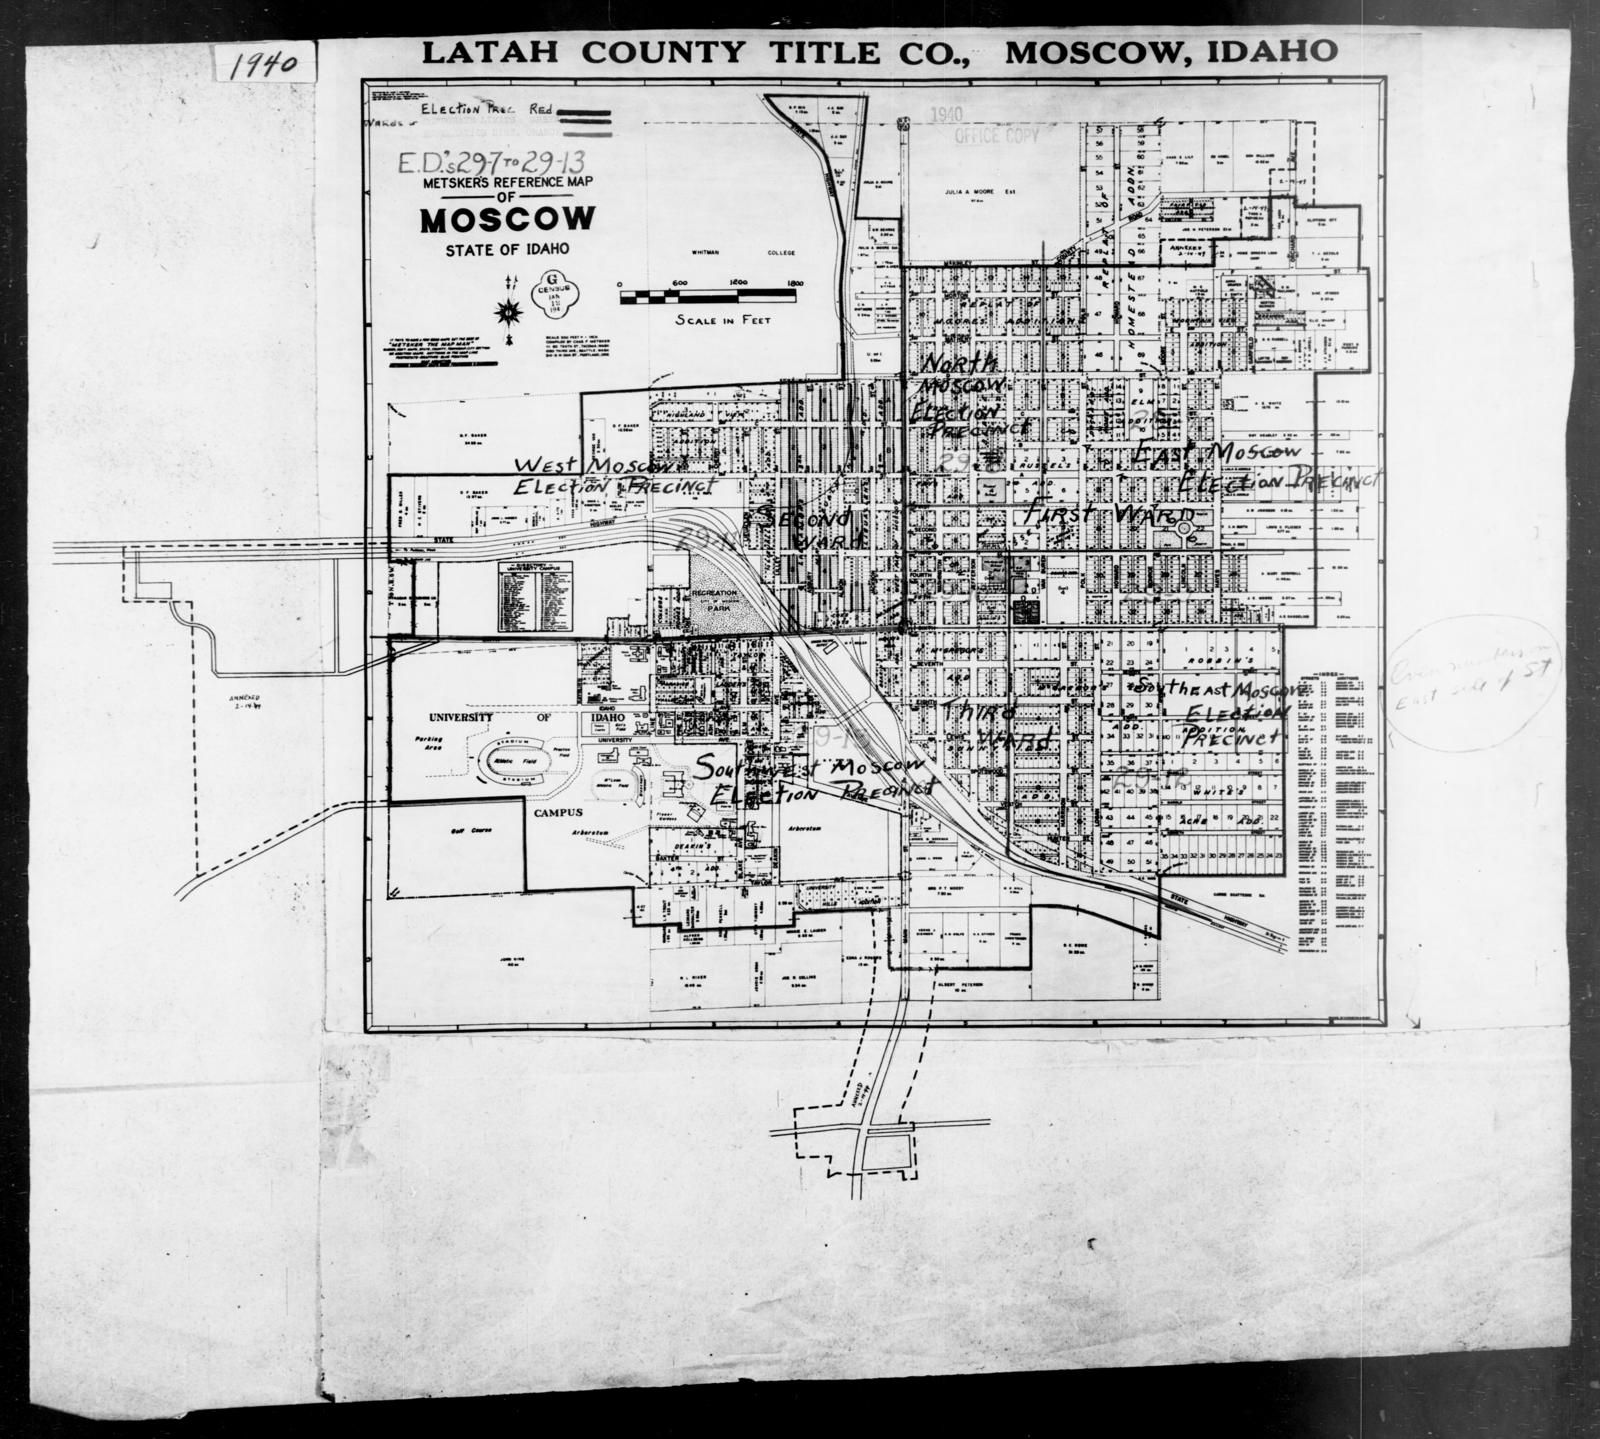 1940 Census Enumeration District Maps - Idaho - Latah County ... on moscow city map, moscow university map, antique moscow map,